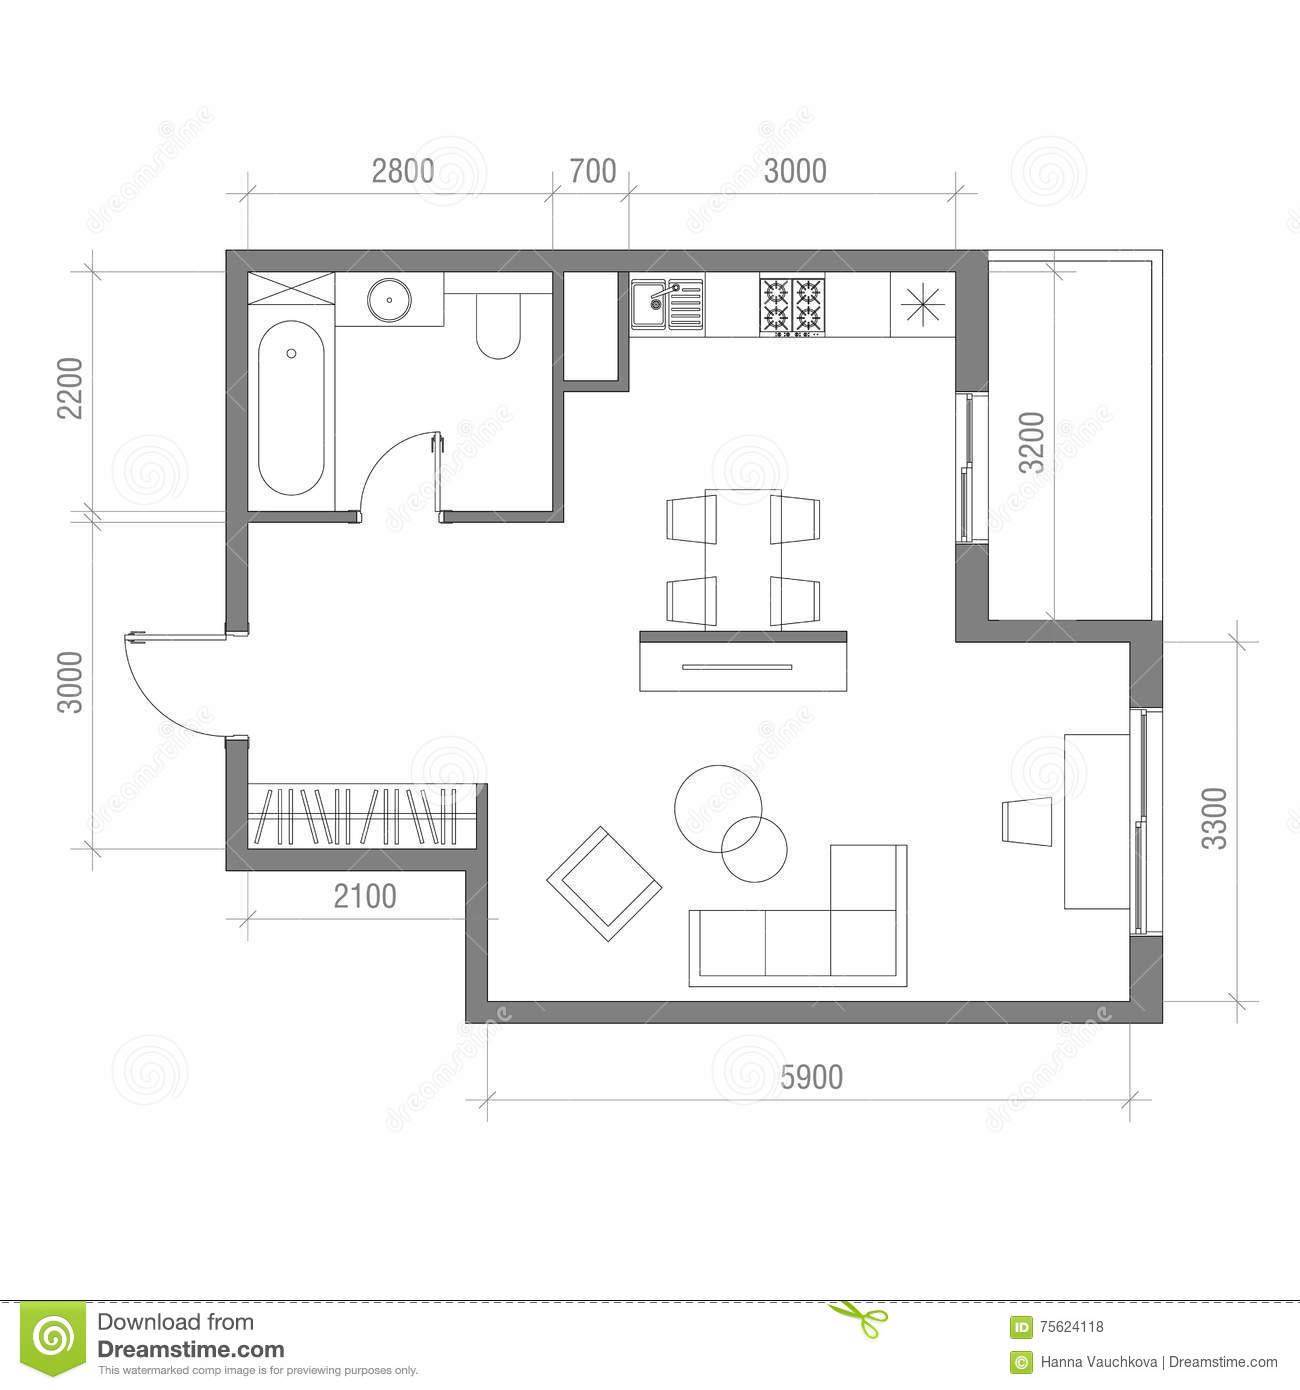 Architectural floor plan with dimensions studio apartment for Living room design floor plan